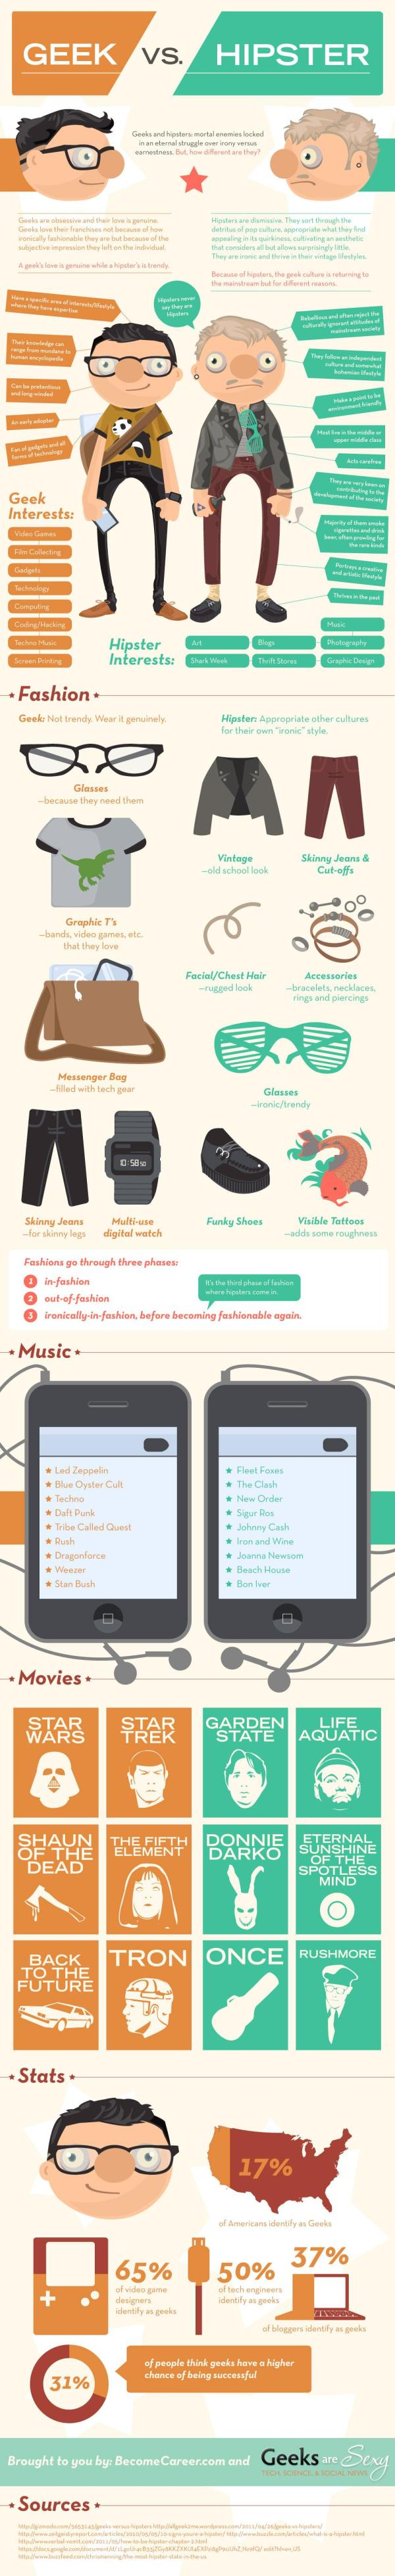 Geeks vs Hipsters Infographic